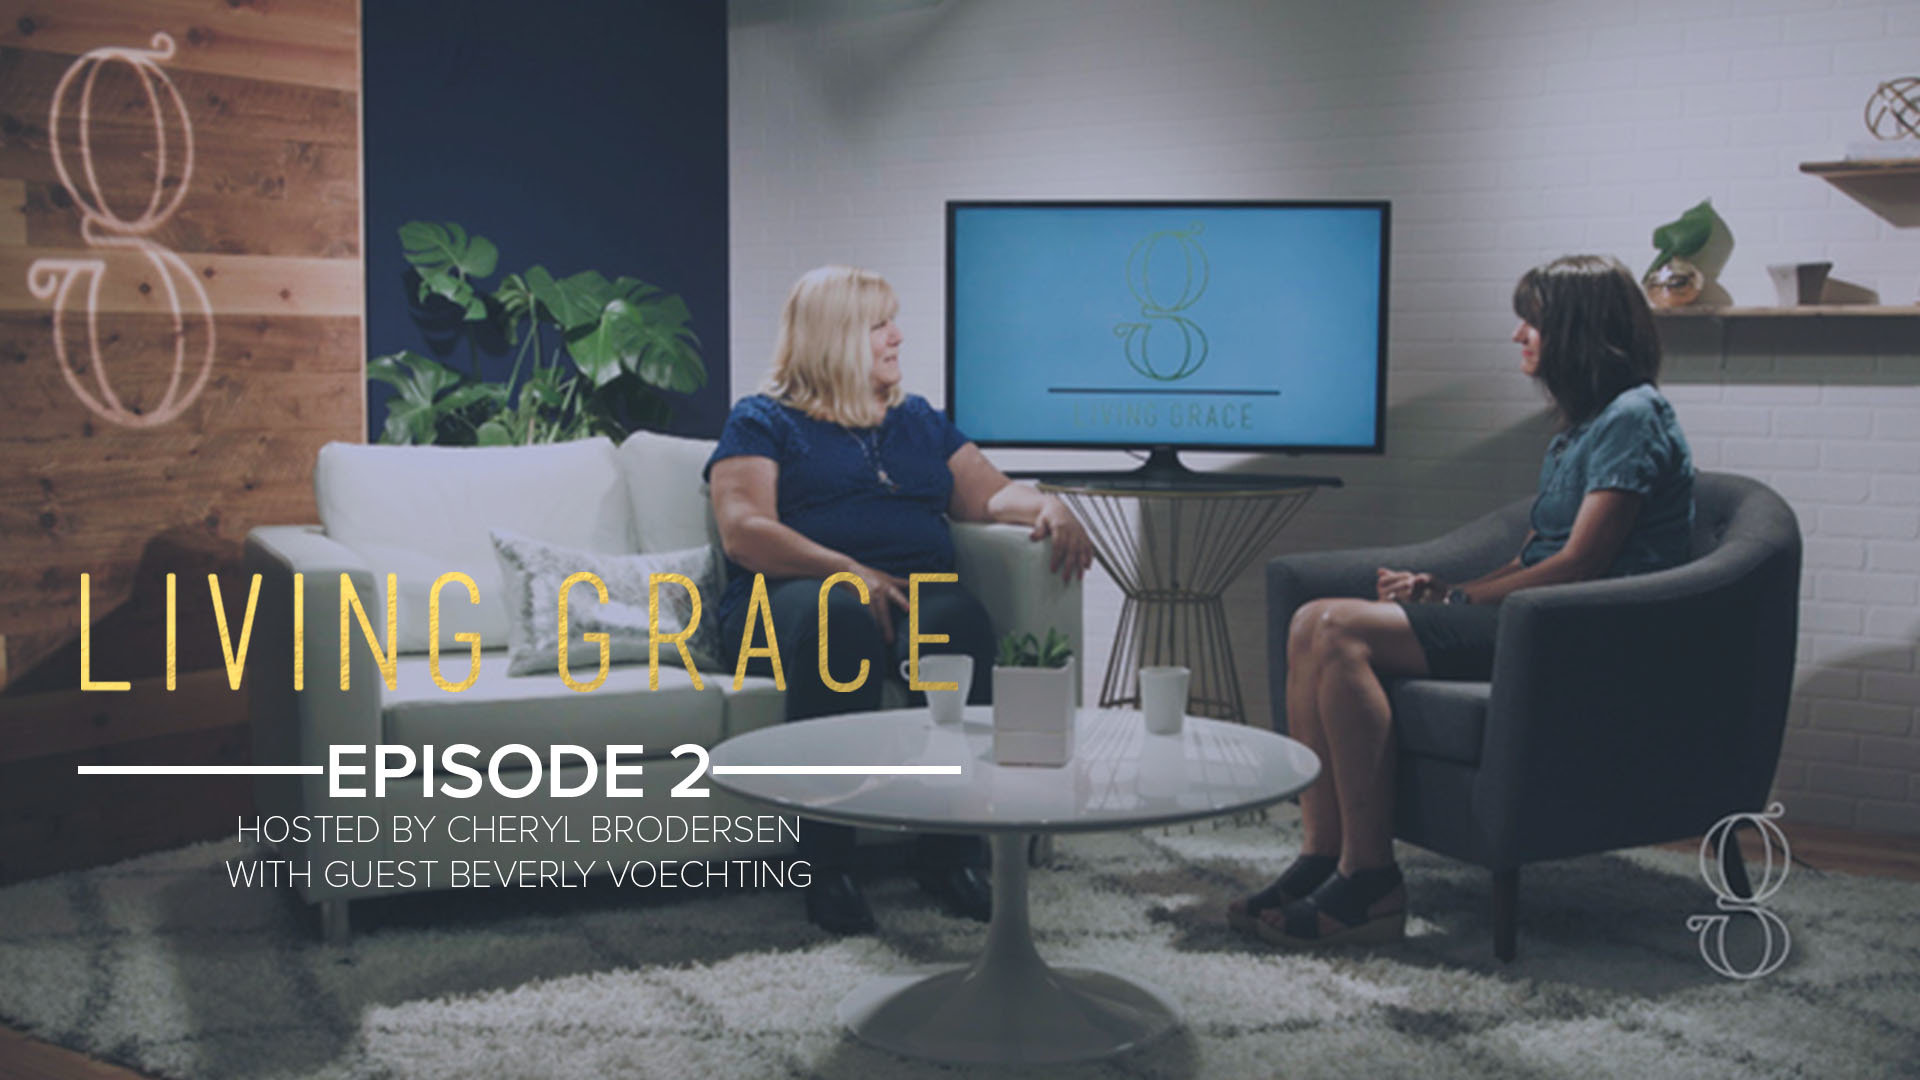 Living Grace Episode 3 - Interview with Beverly Voechting